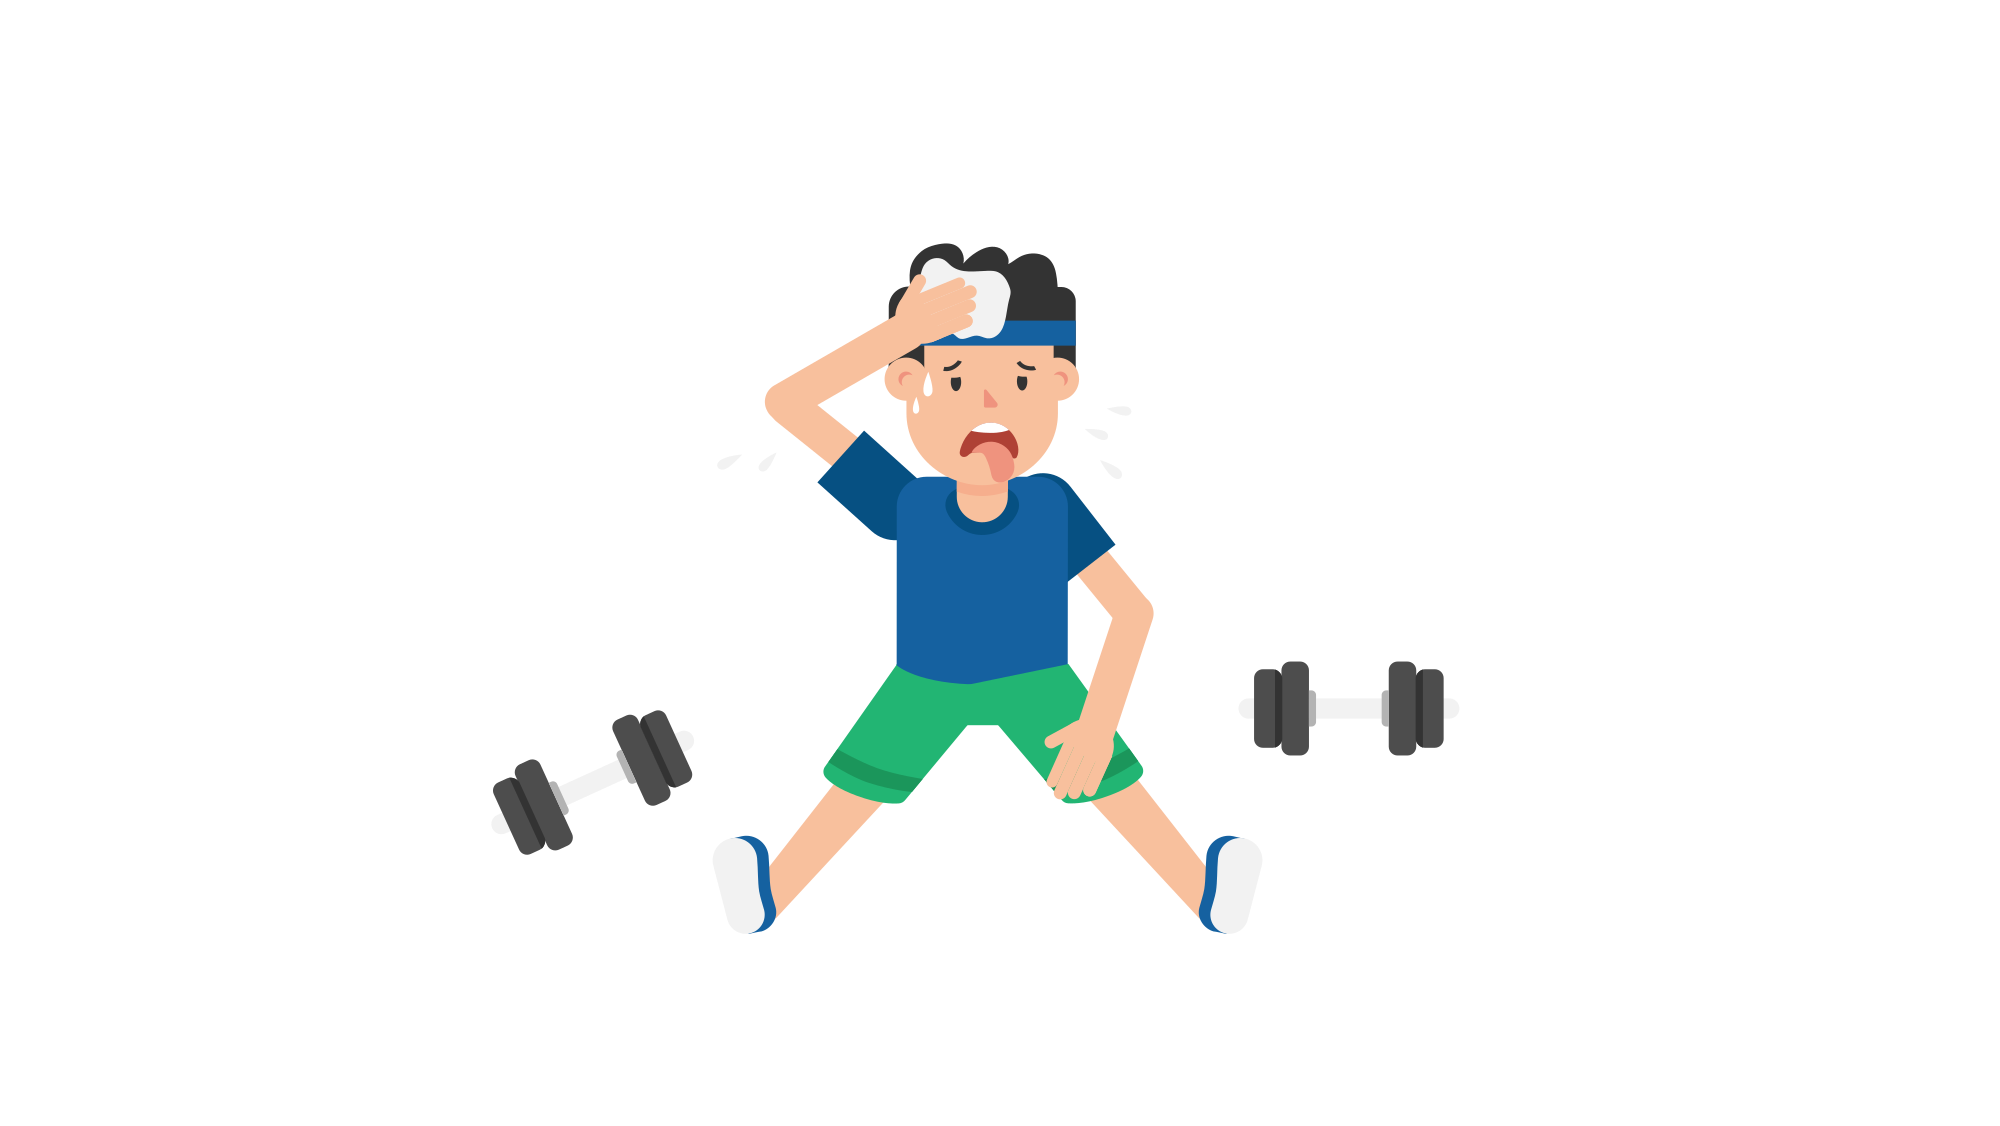 Animation vector exercise. File man tired after